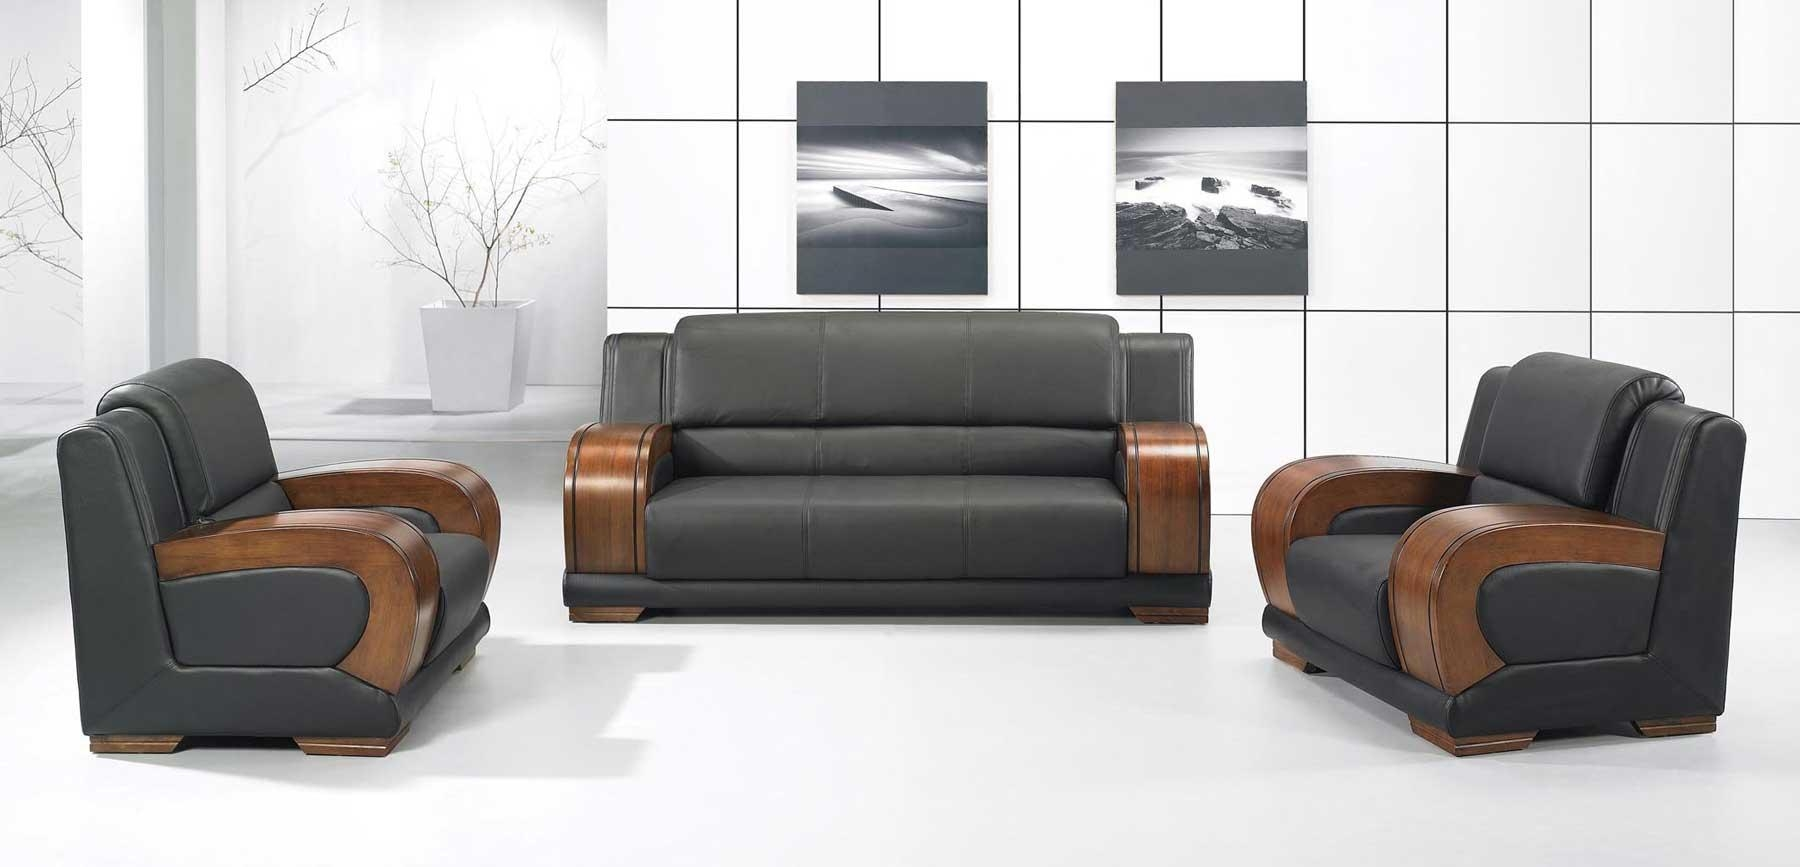 Amazing Modern Office Sofa With China Office Sofa S China Modern Regarding Office Sofa Chairs (View 3 of 20)